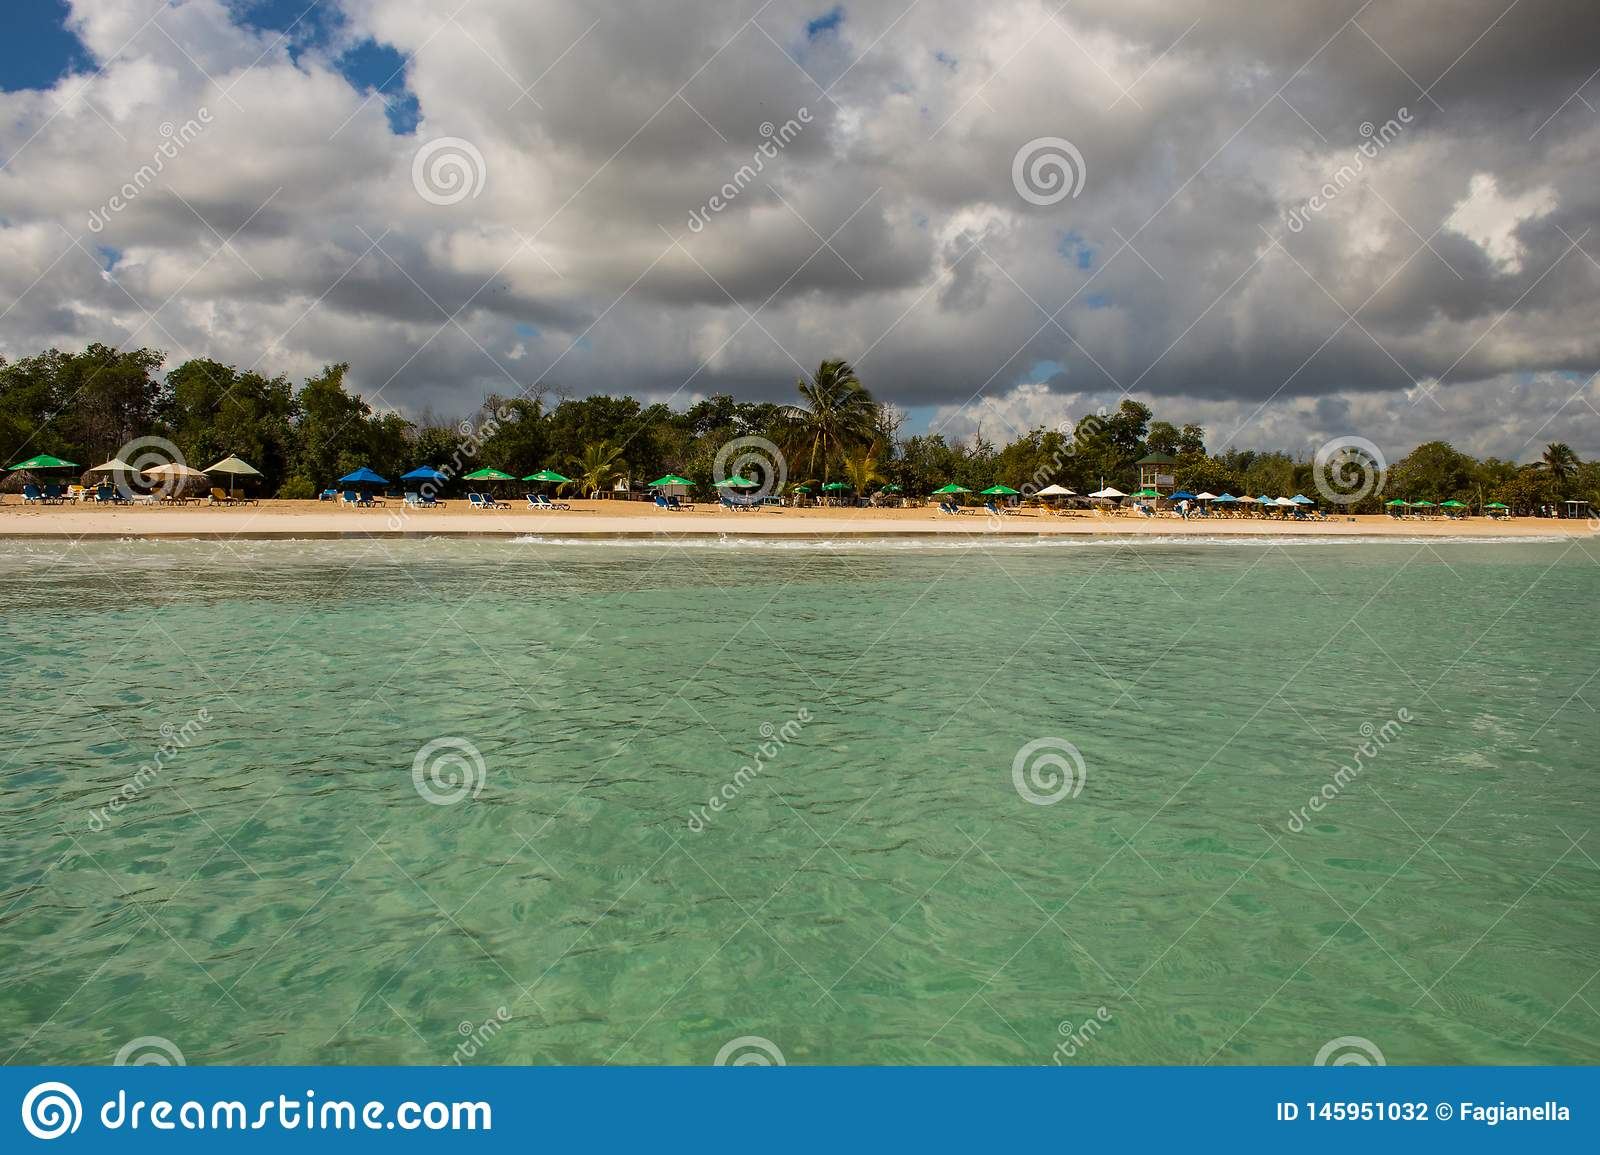 In the middle of an amazing, green and turquoise caribbean sea; transparent water, tropical paradise. Playa Macaro, Punta Cana,